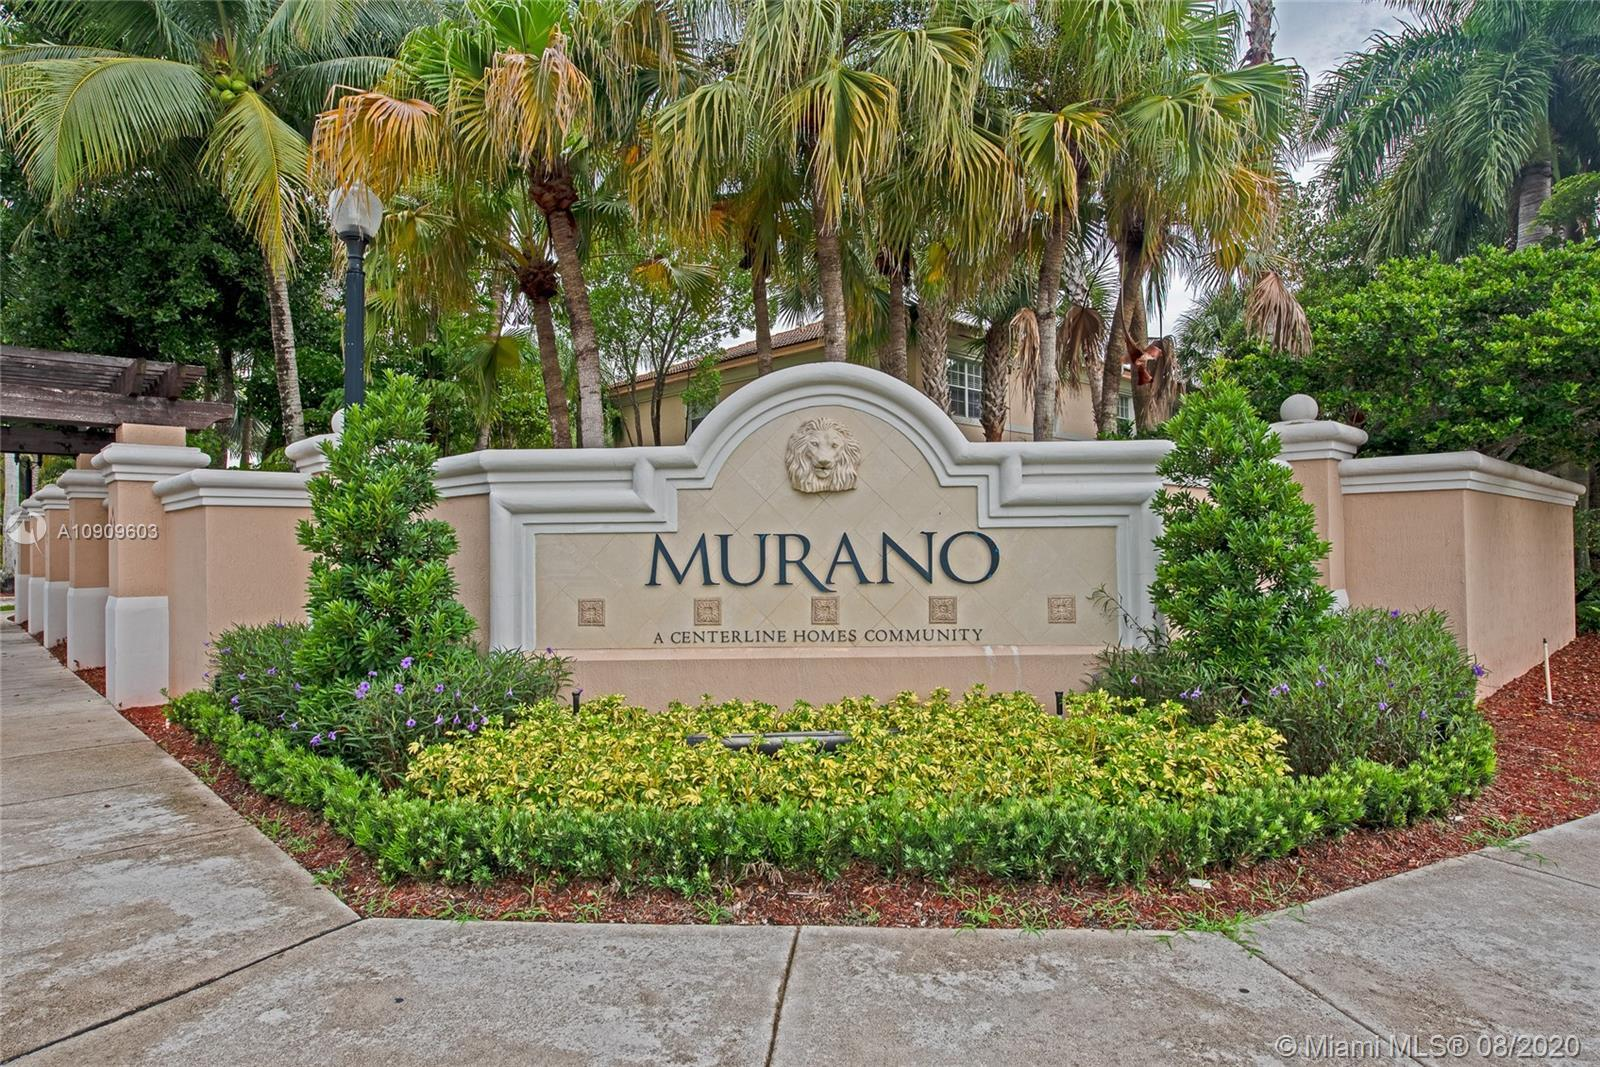 Beautifully kept 3 bedroom 2.5 bath Townhouse in sought after Murano, Miramar. Spacious kitchen with all stainless steel appliance. Breakfast bar. Wood floors downstairs and upstairs. Crown molding throughout the entire home. Knockdown texture walls. Large stairs landing. Well kept master suite bathroom. Newer A/C replaced in 2017. Storm shutters. 1 car garage plus drive way space for 2 more cars! Well maintained Guard gated community. Pool, gym, tennis courts and tot lot for family entertainment. Conveniently located close to major roads and highways. Move-in ready!